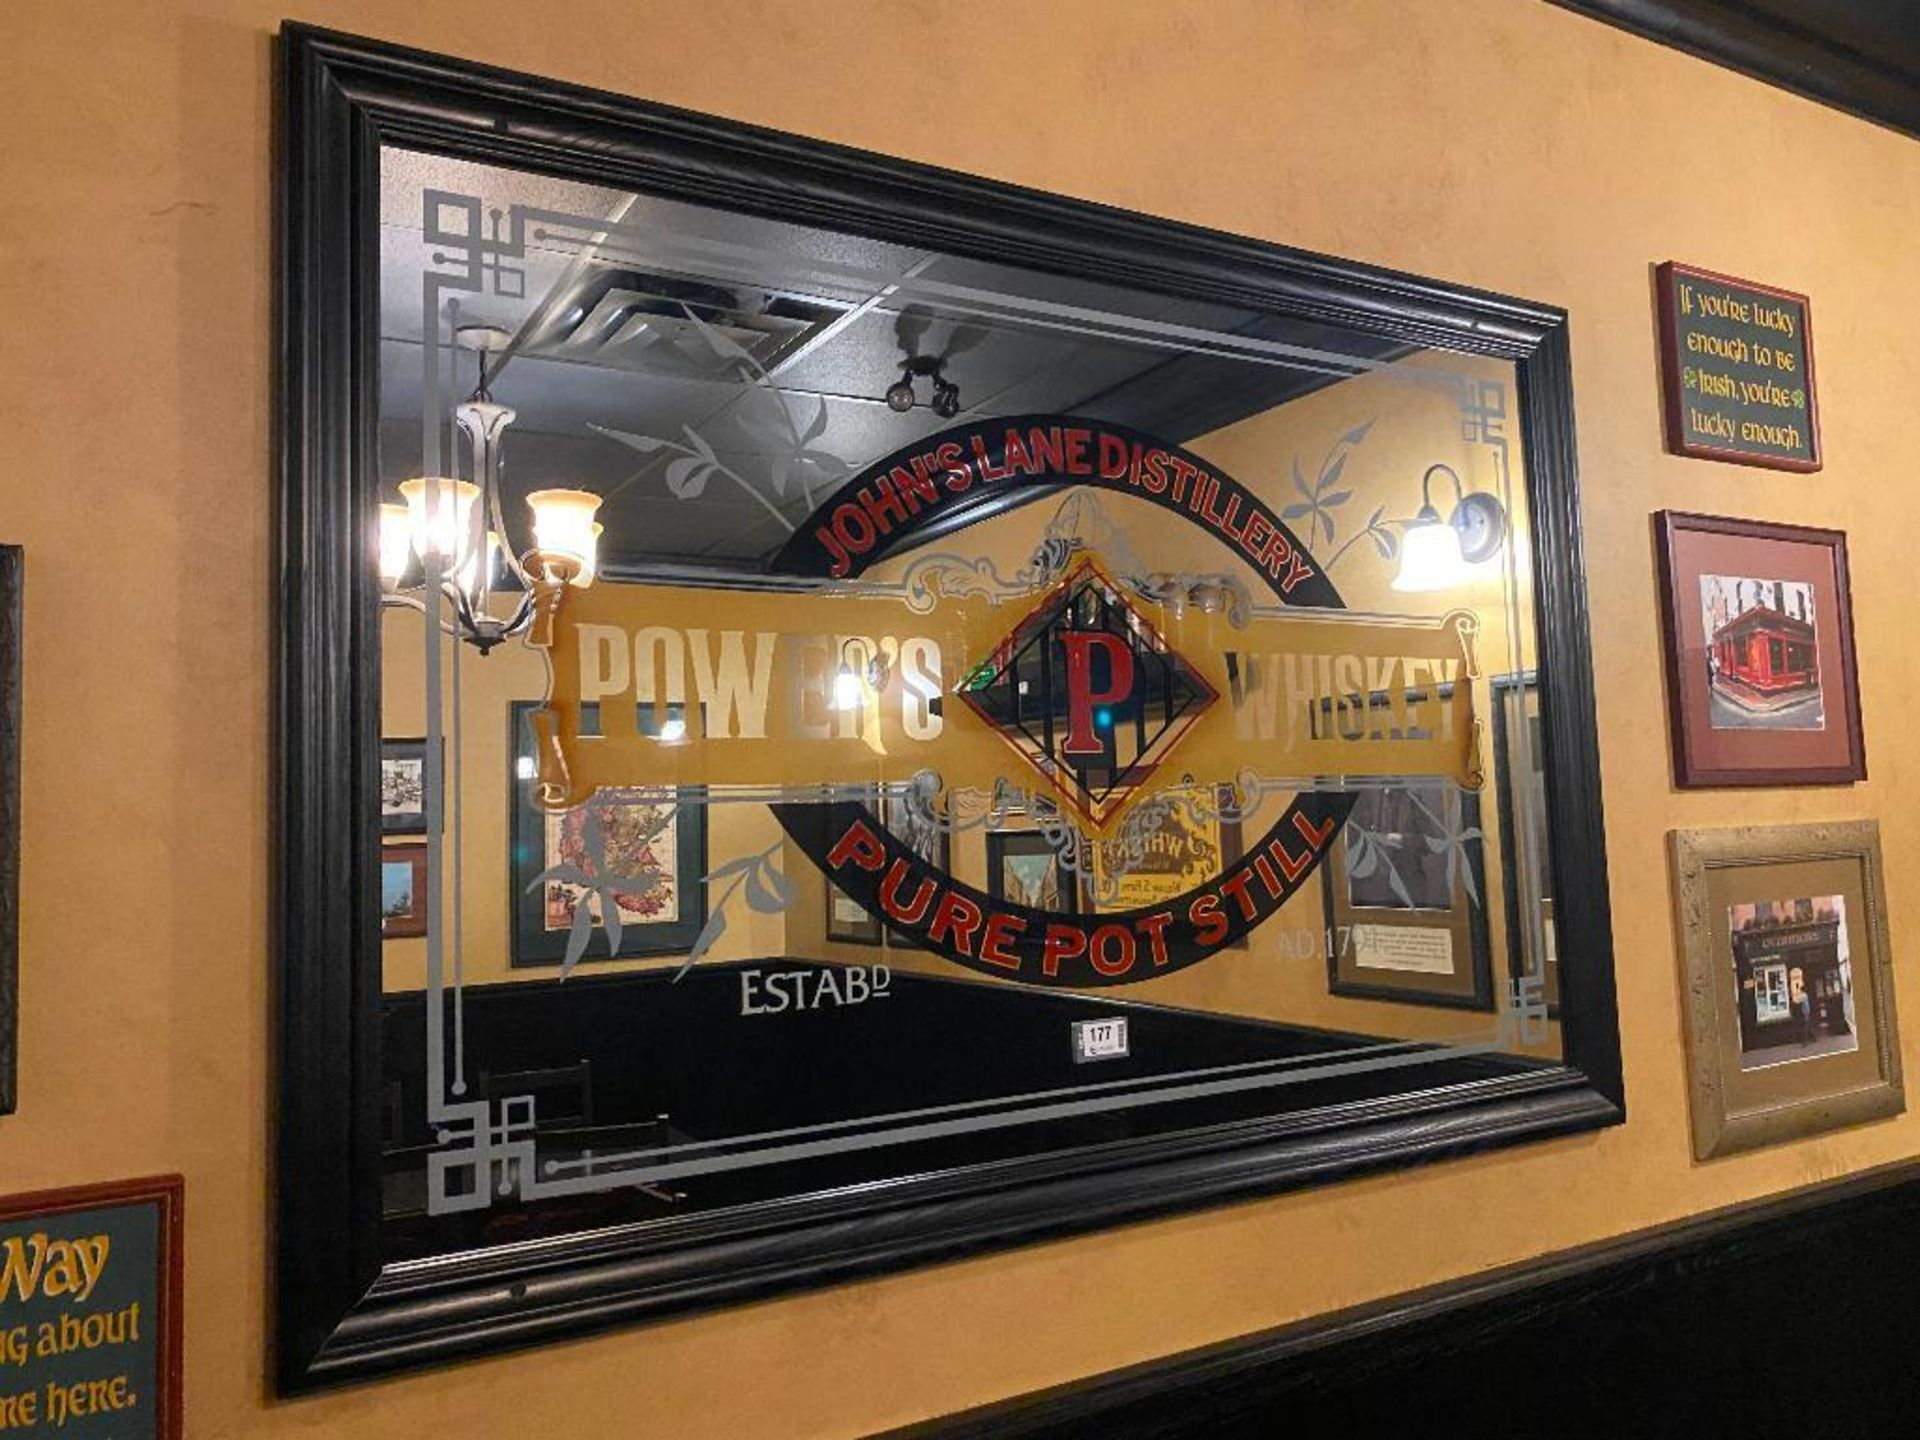 LOT OF (8) FRAMED MEMORABILIA PHOTOS & (1) JOHN'S LANE DISTILLERY MIRROR - NOTE: REQUIRES REMOVAL FR - Image 4 of 6